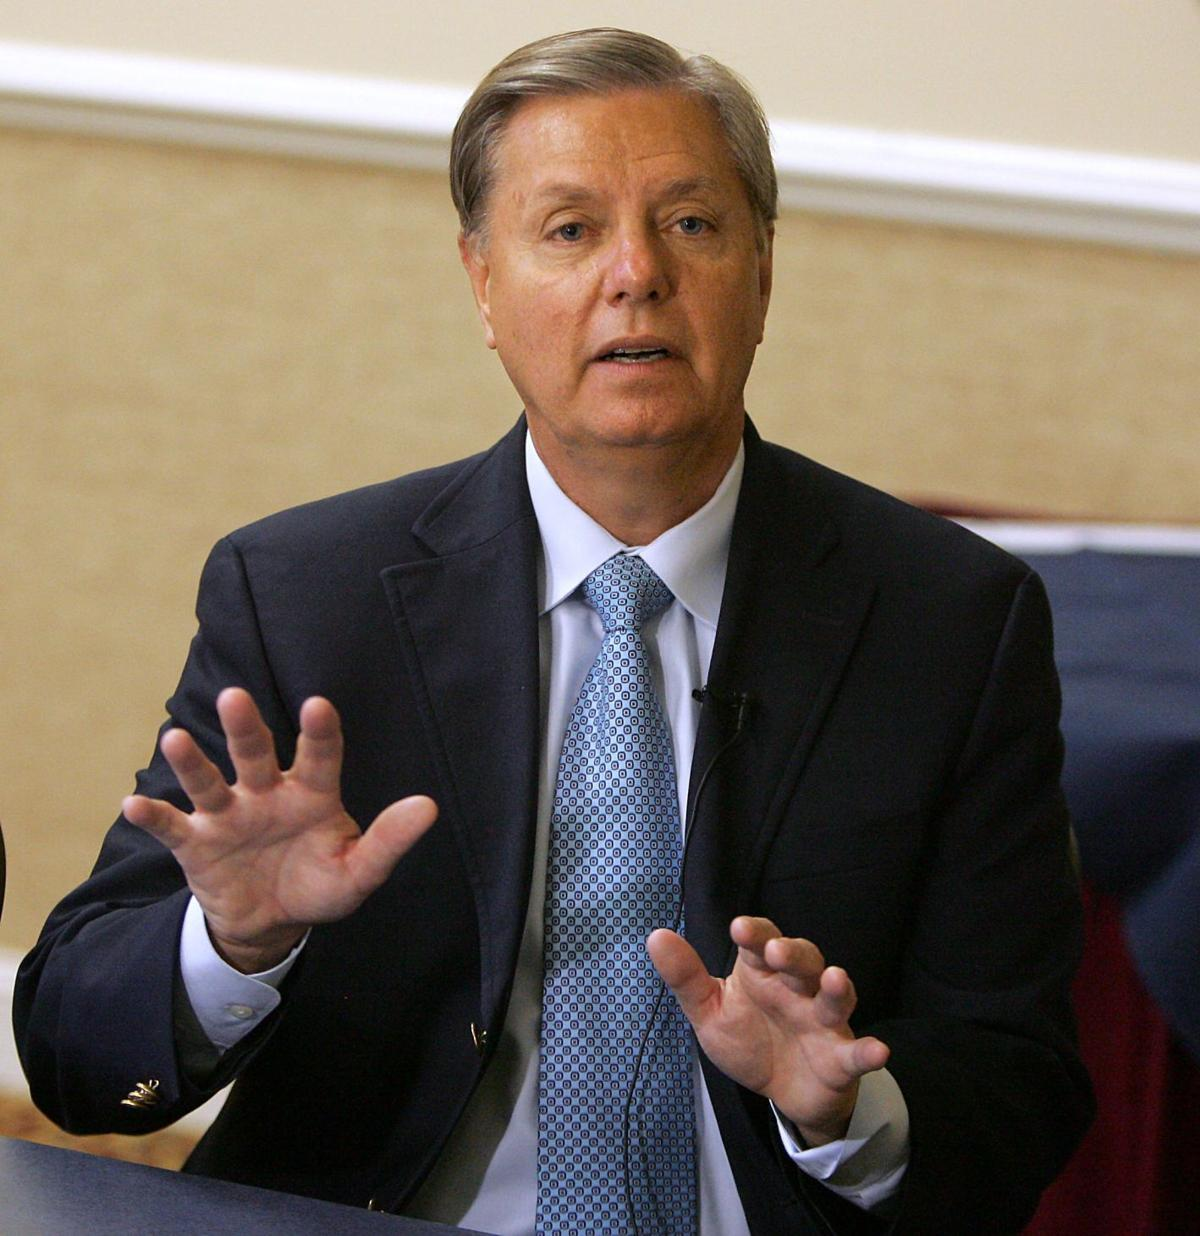 Graham: A lot at stake in Syria Graham's thoughts on Syria